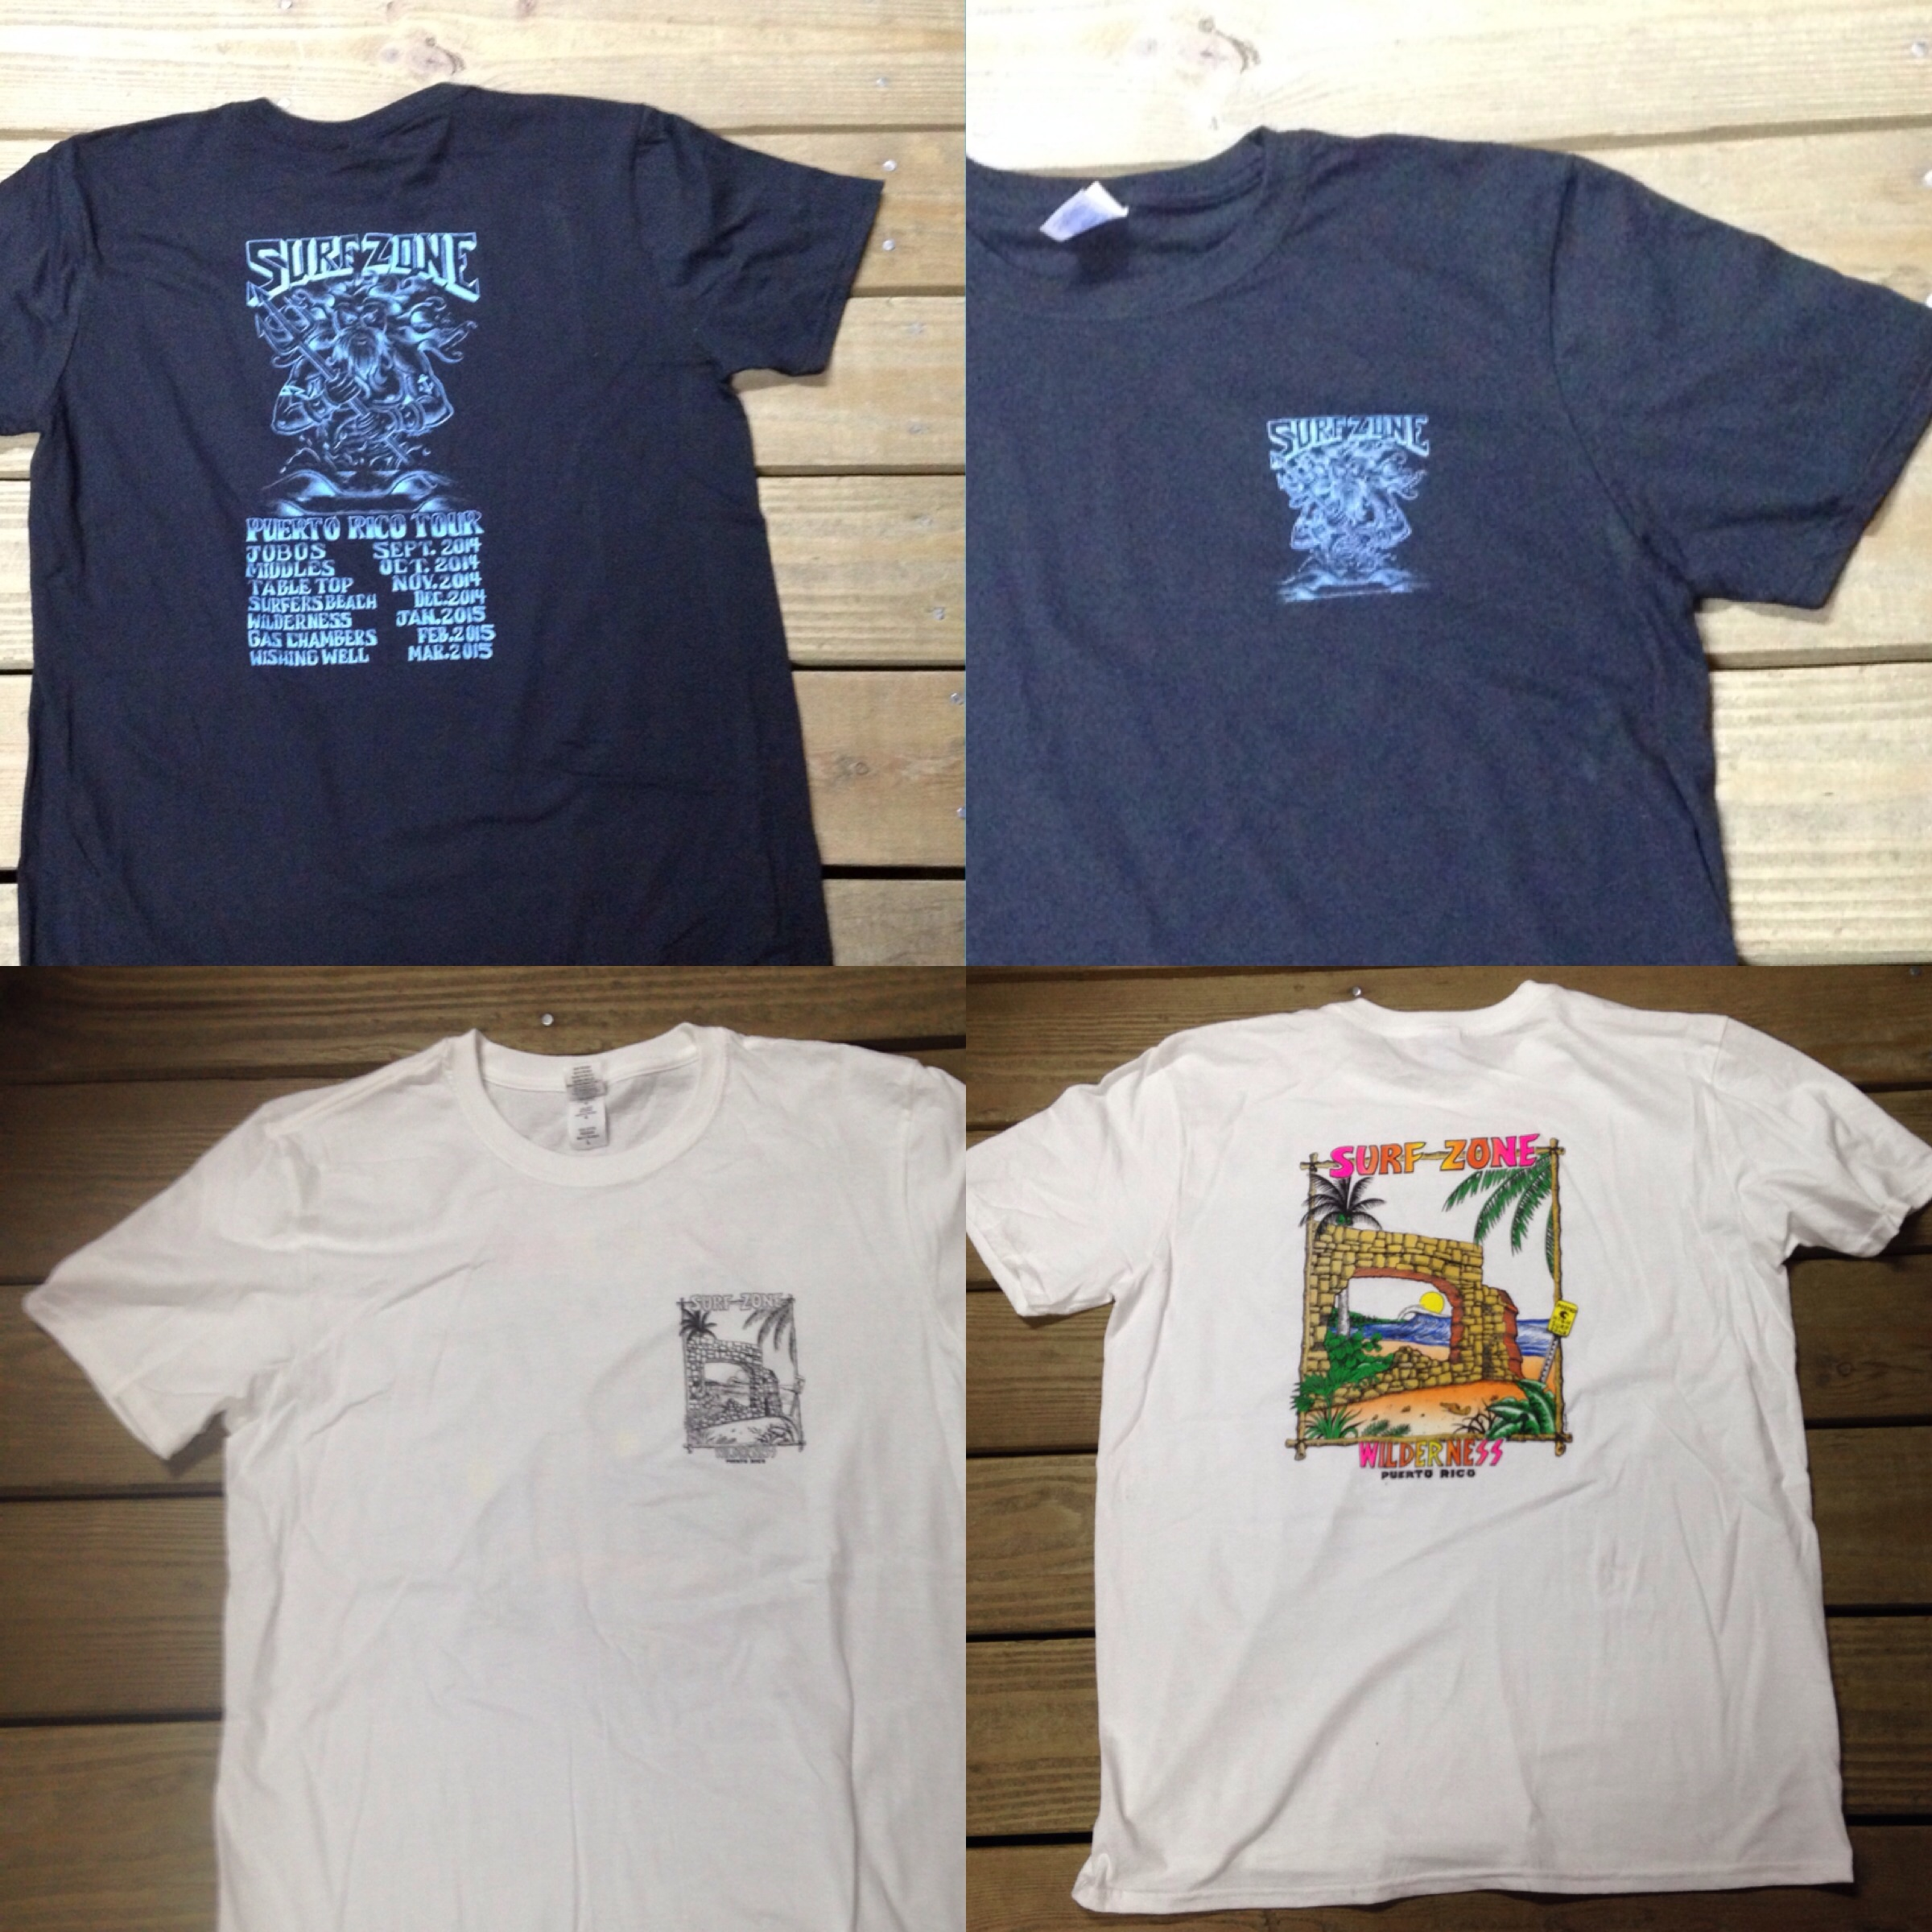 Surf Zone 2015 tour and Wilderness t-shirts!